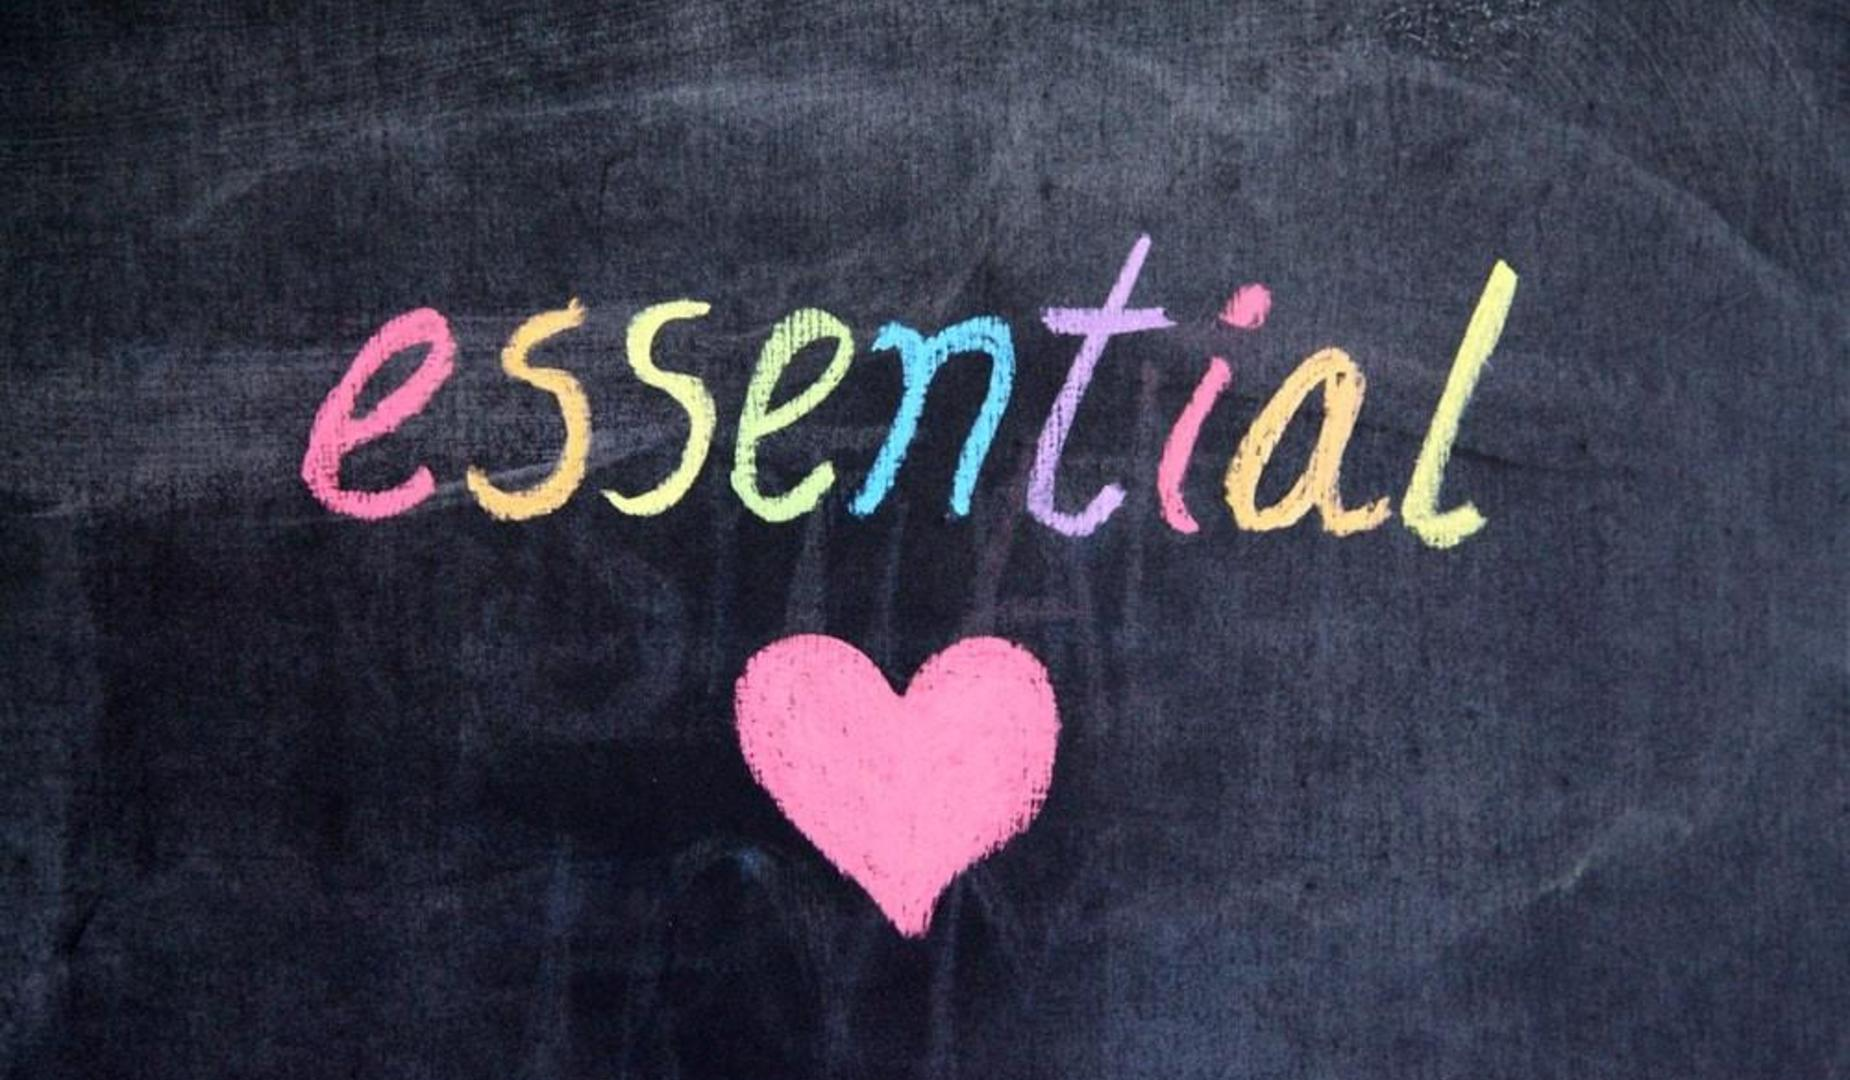 Essential spelled out with heart on chalkboard